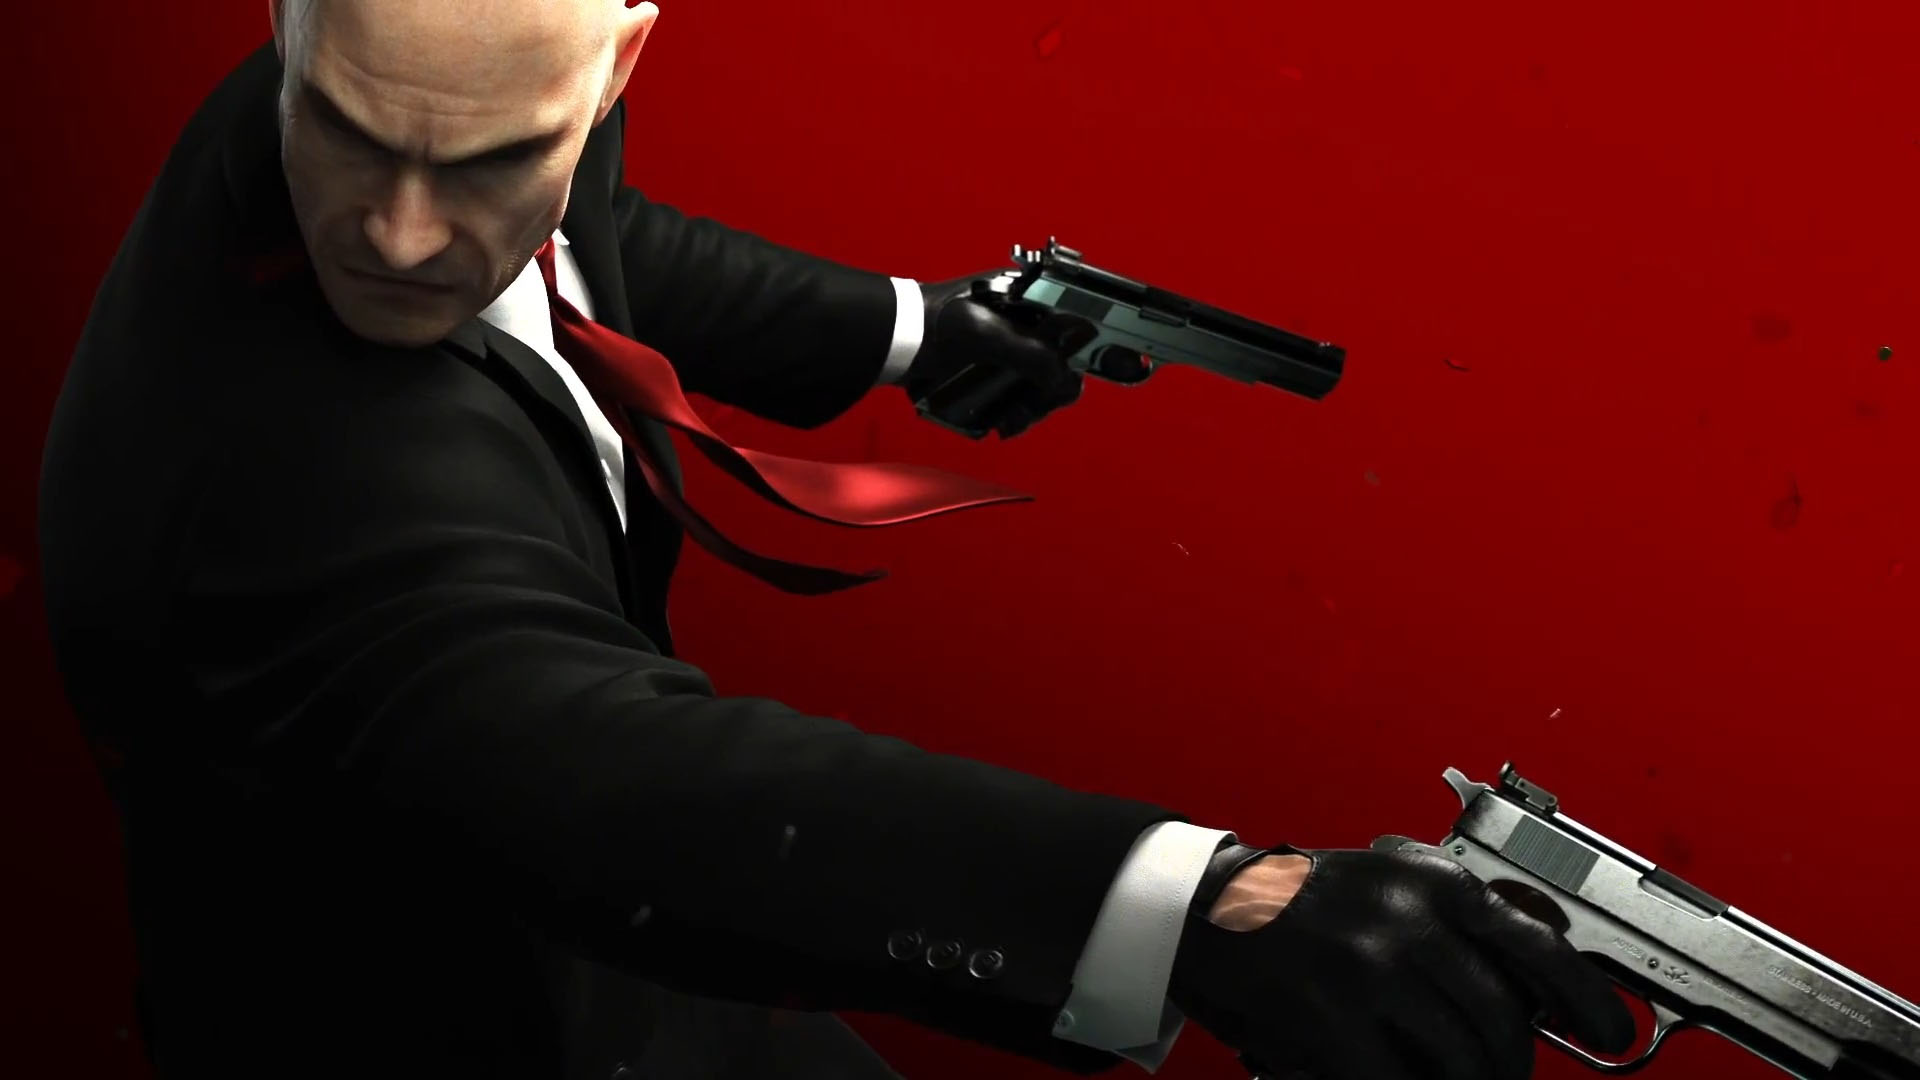 Hitman Absolution Wallpaper 1920x1080 Posted By Michelle Cunningham